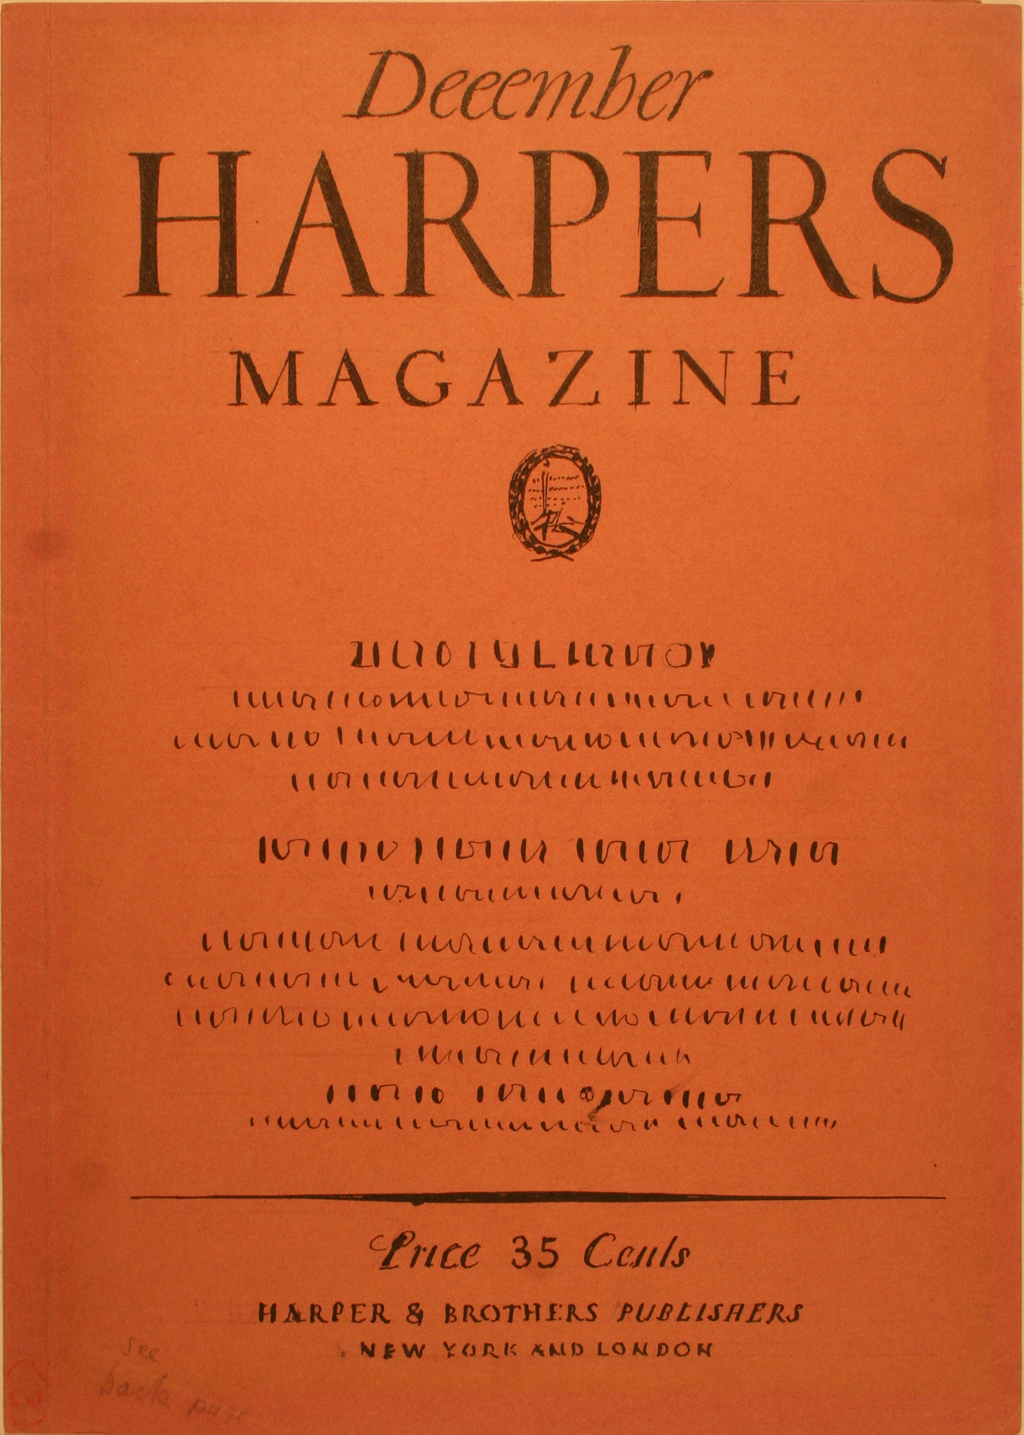 Comp for cover of Harpers Magazine by W.A. Dwiggins (1925). Boston Public Library, 2011 Dwiggins Collection, Box 4, Folder 24.